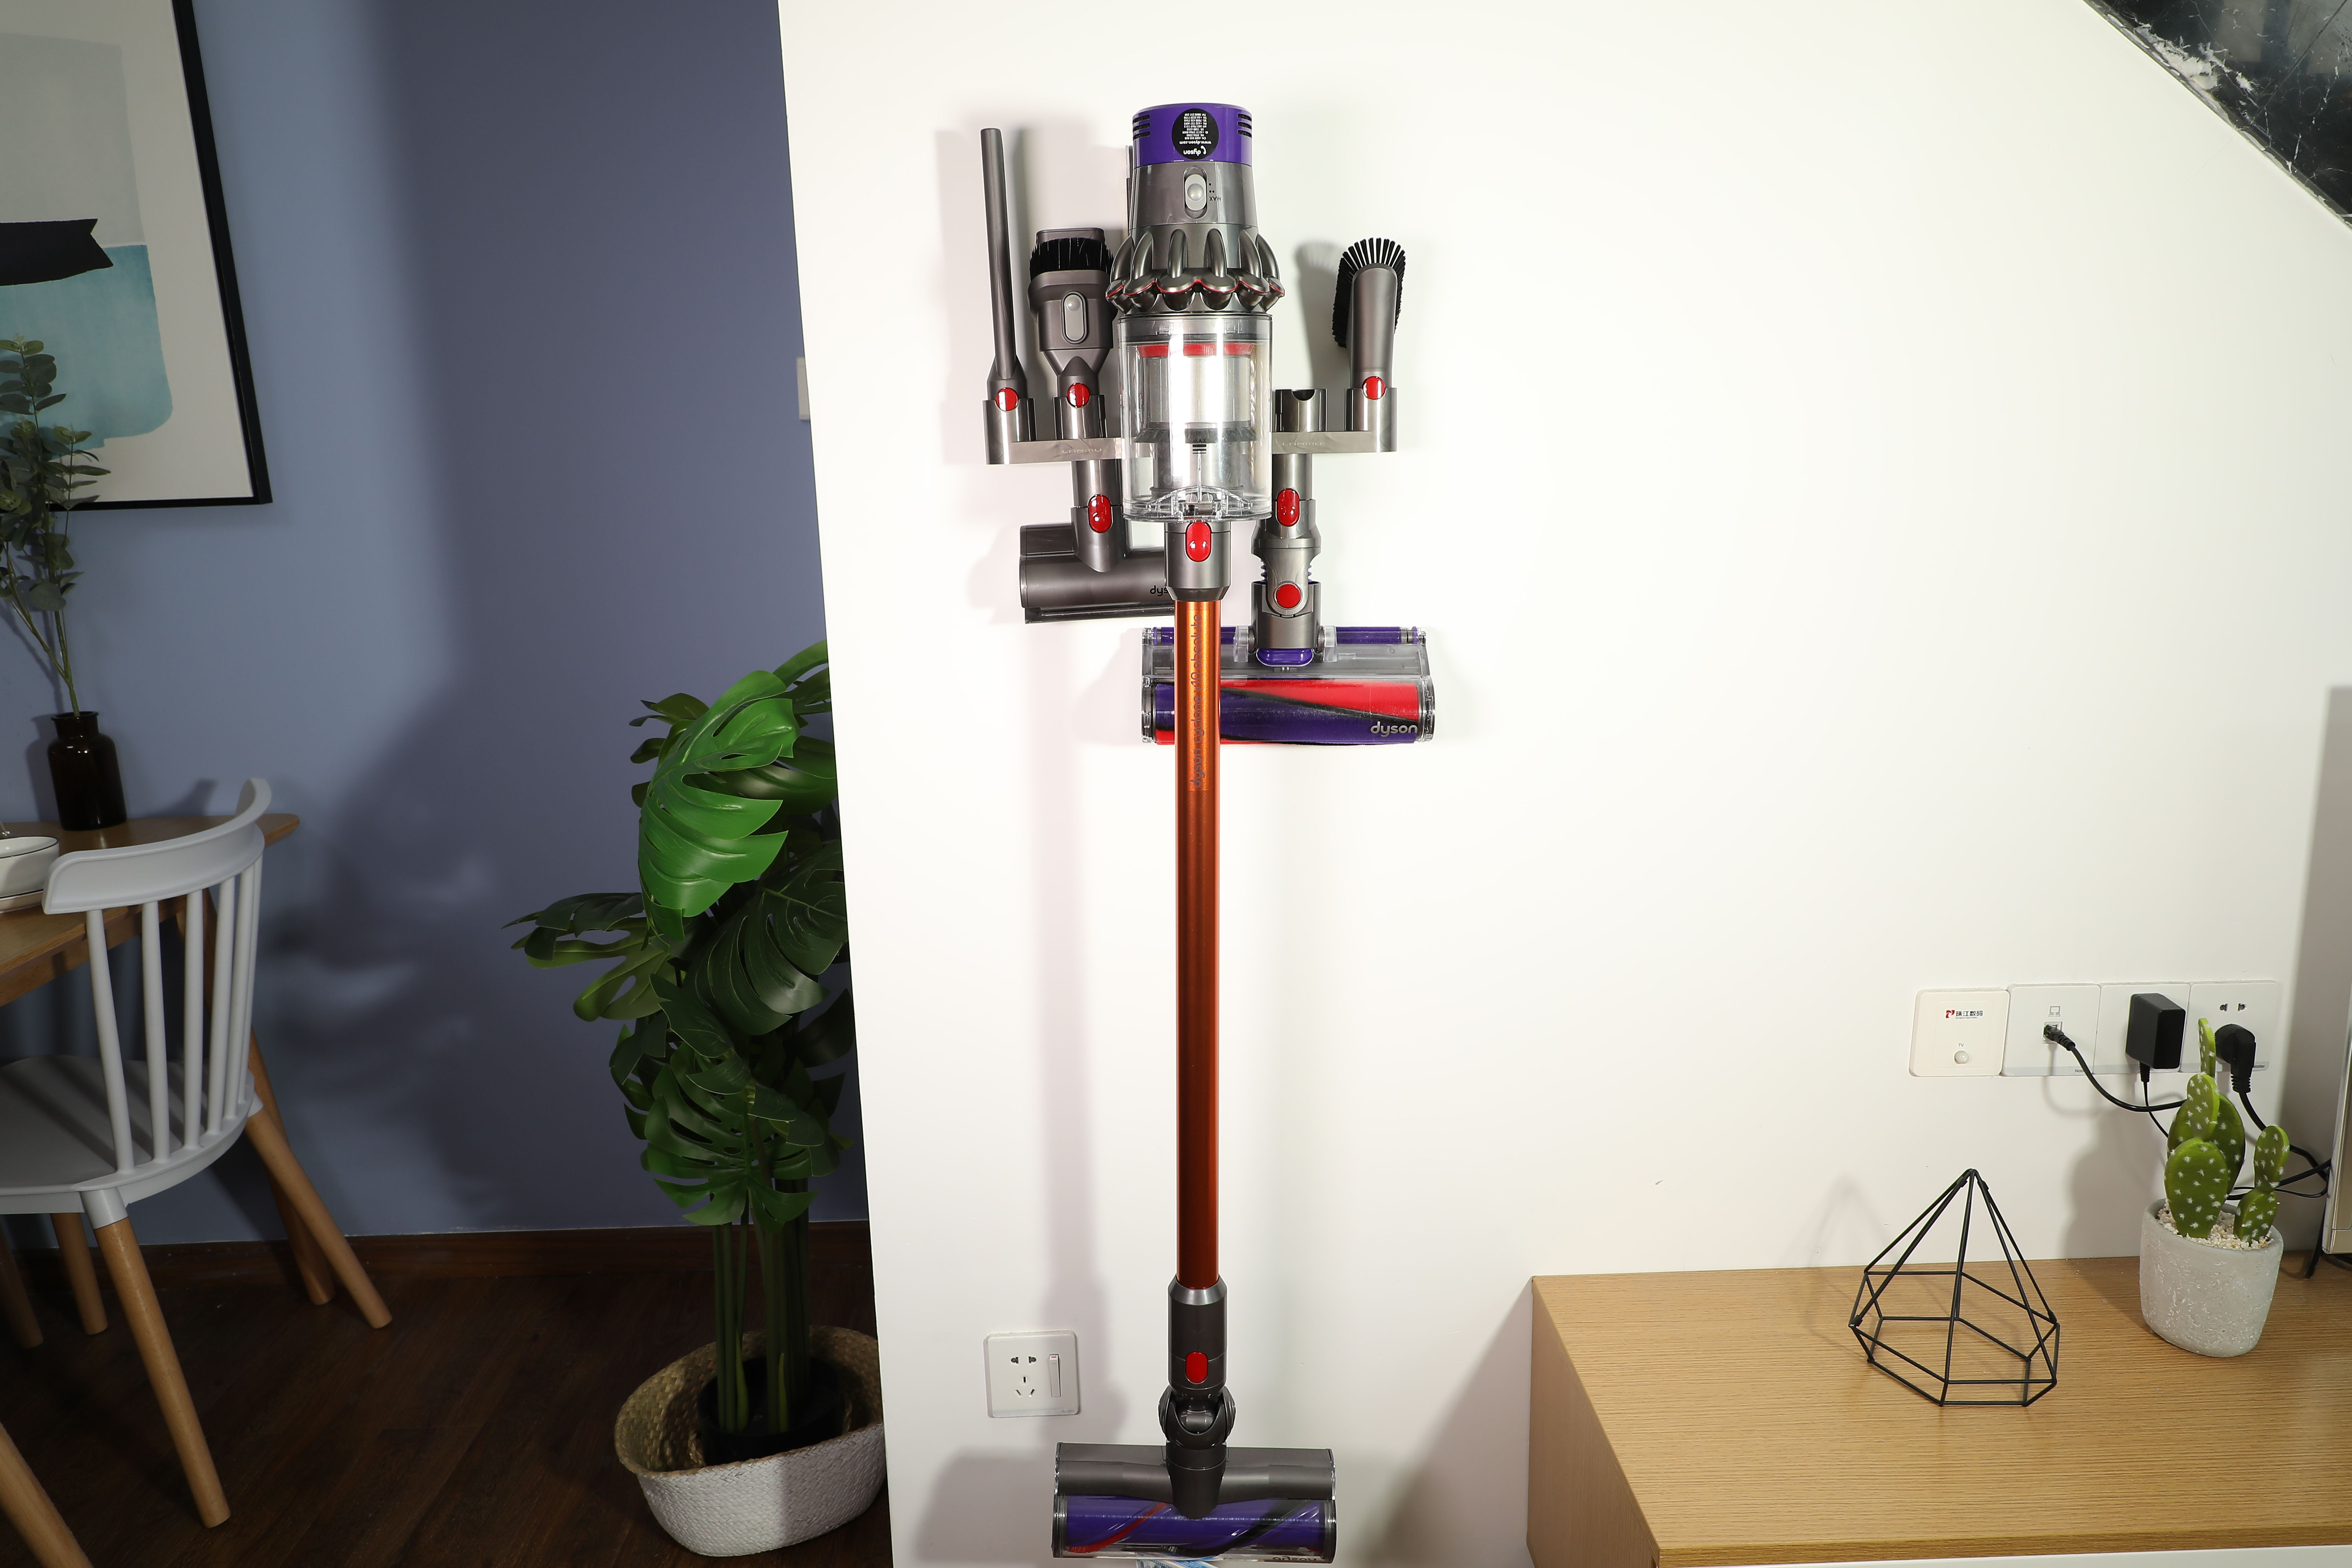 Lanmu How To Manage Dyson Vacuum Attachments Check Creative Lanmu